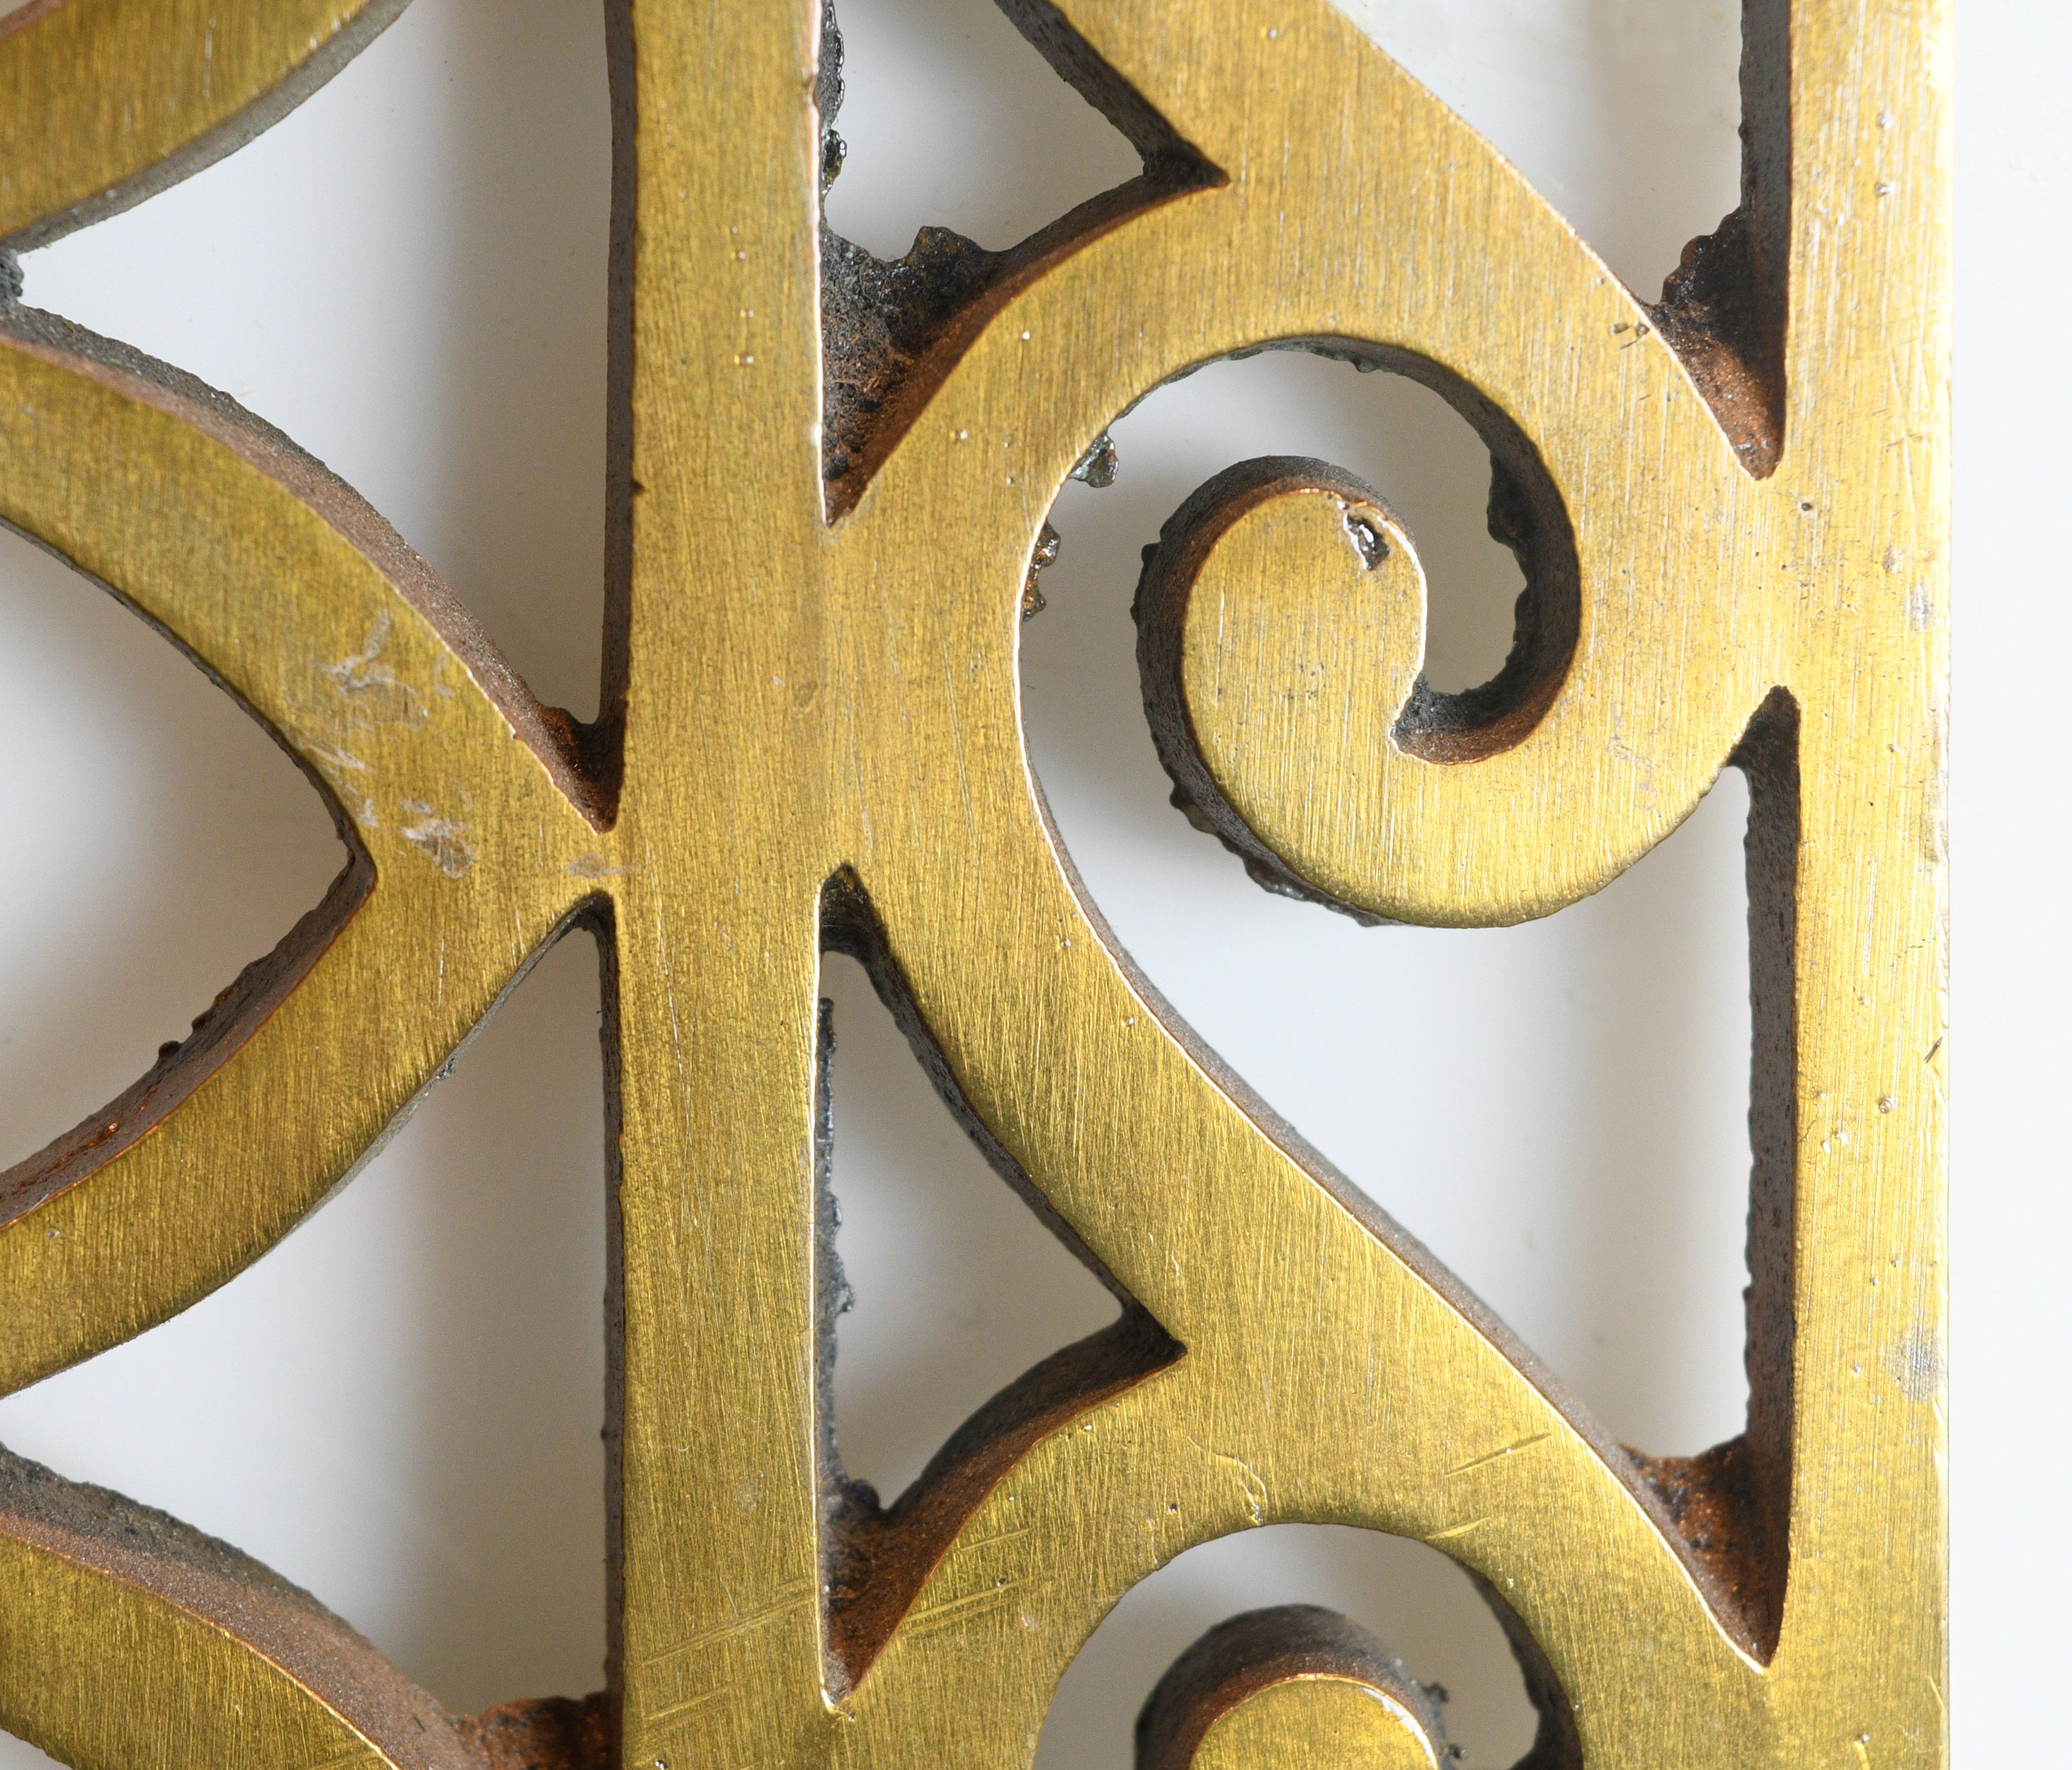 Amazing Decorative Wall Grates Mold - All About Wallart - adelgazare ...